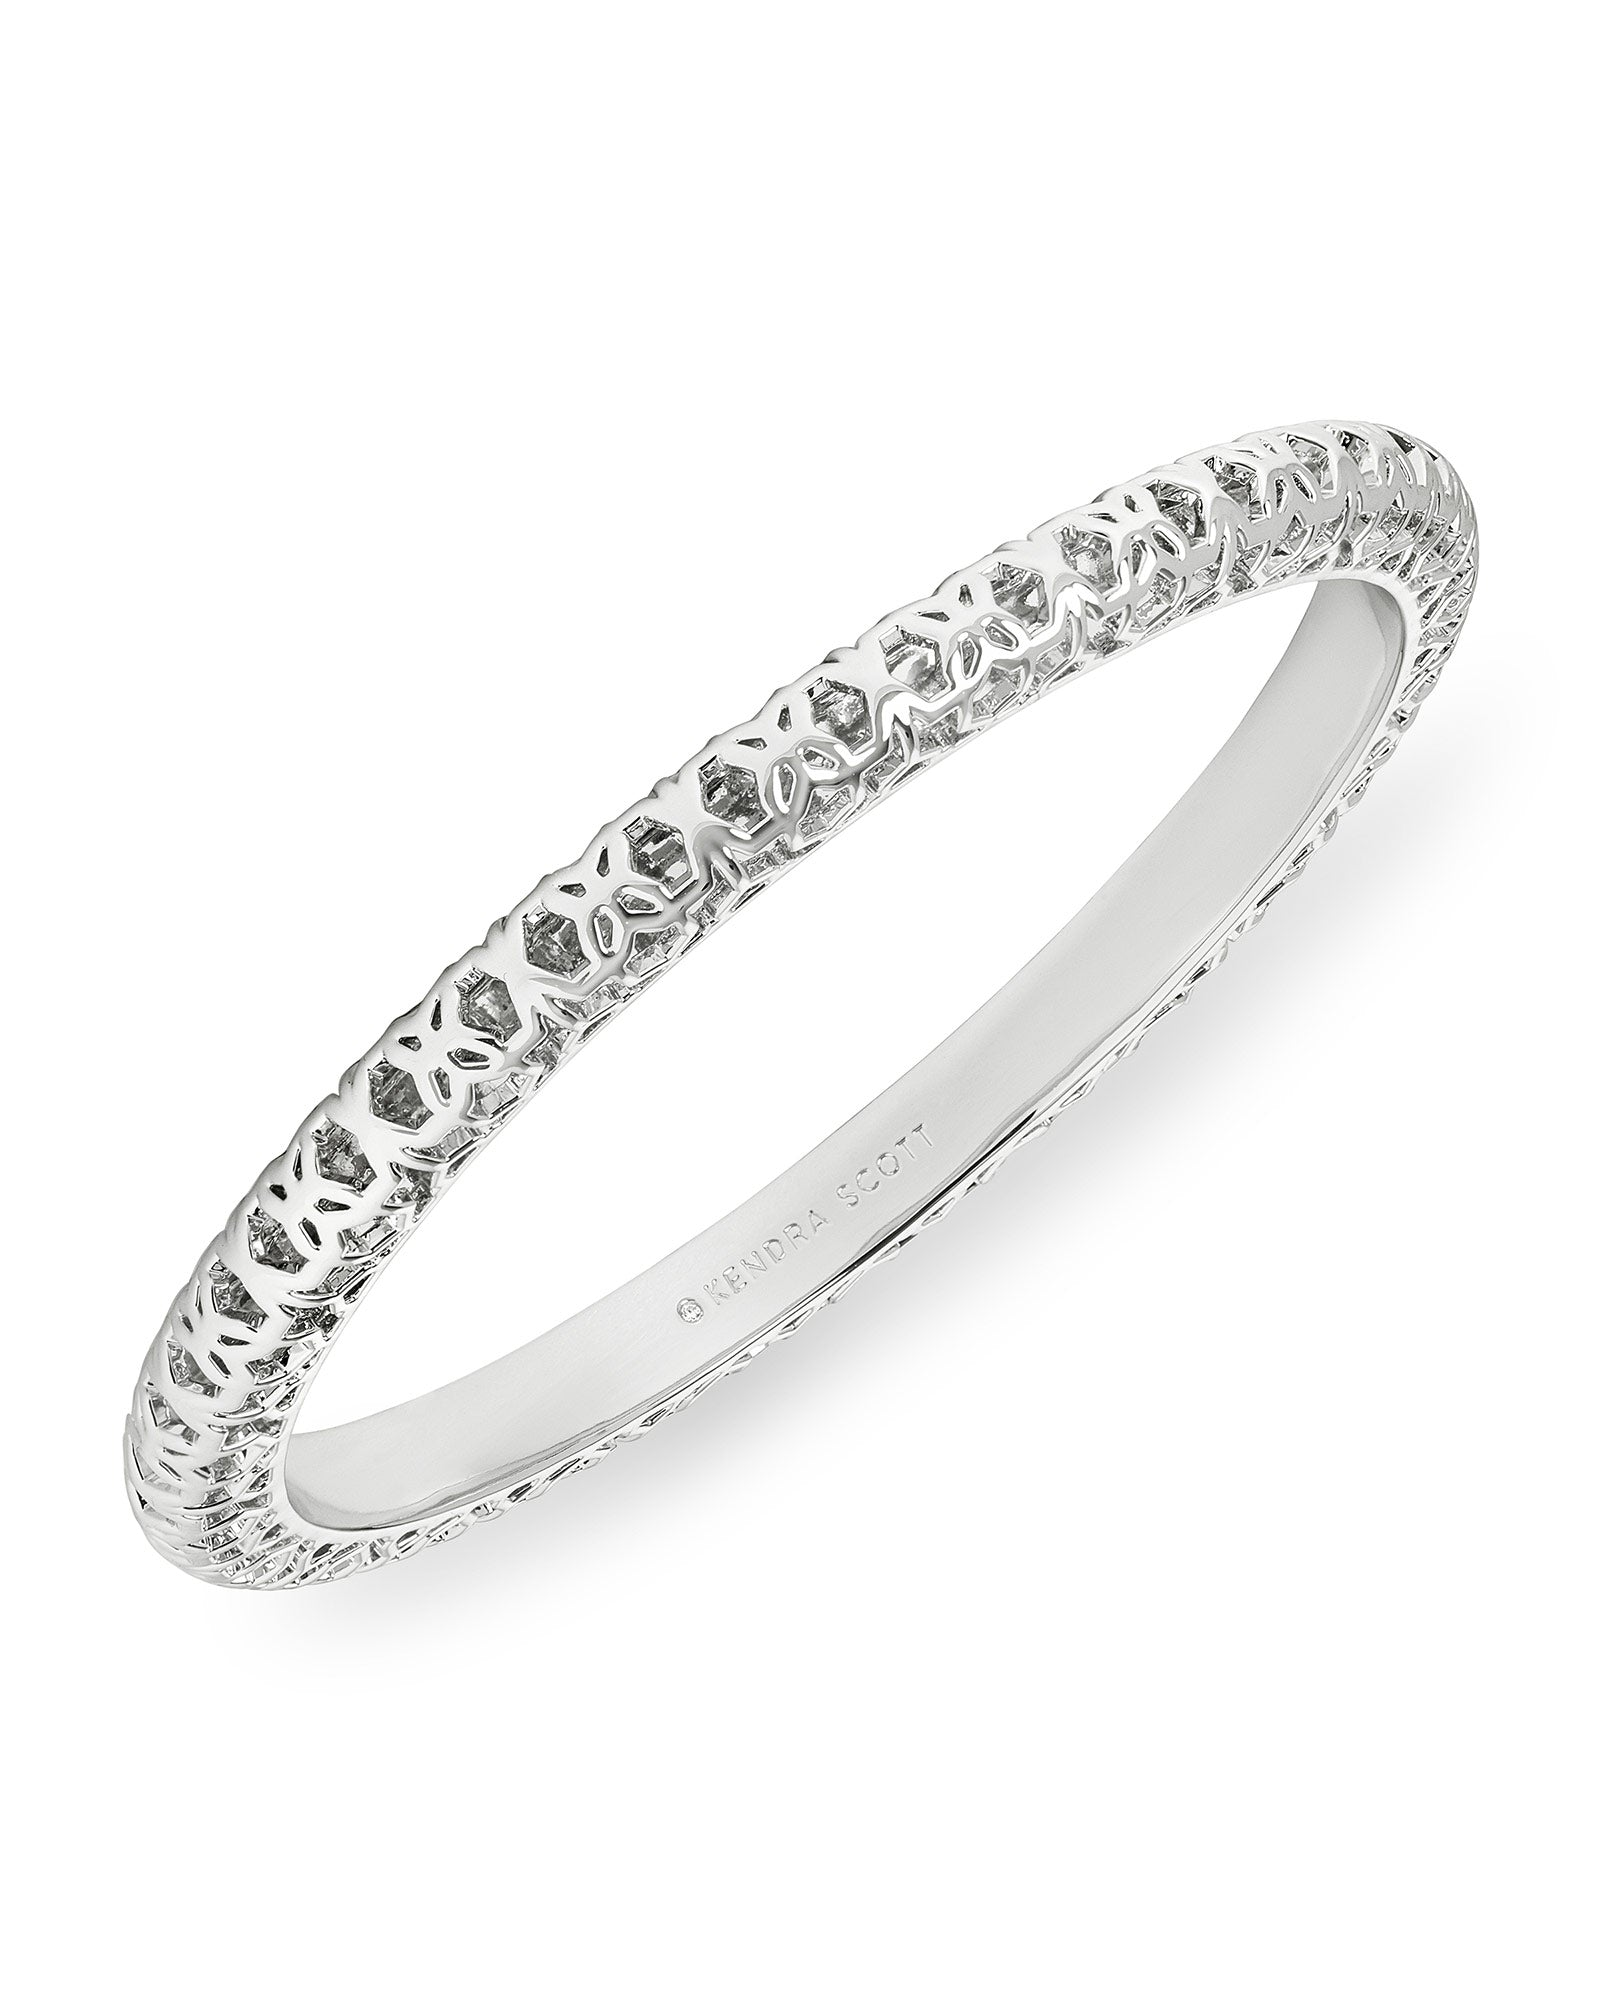 Kendra Scott Maggie Bangle Bracelet In Silver Filigree